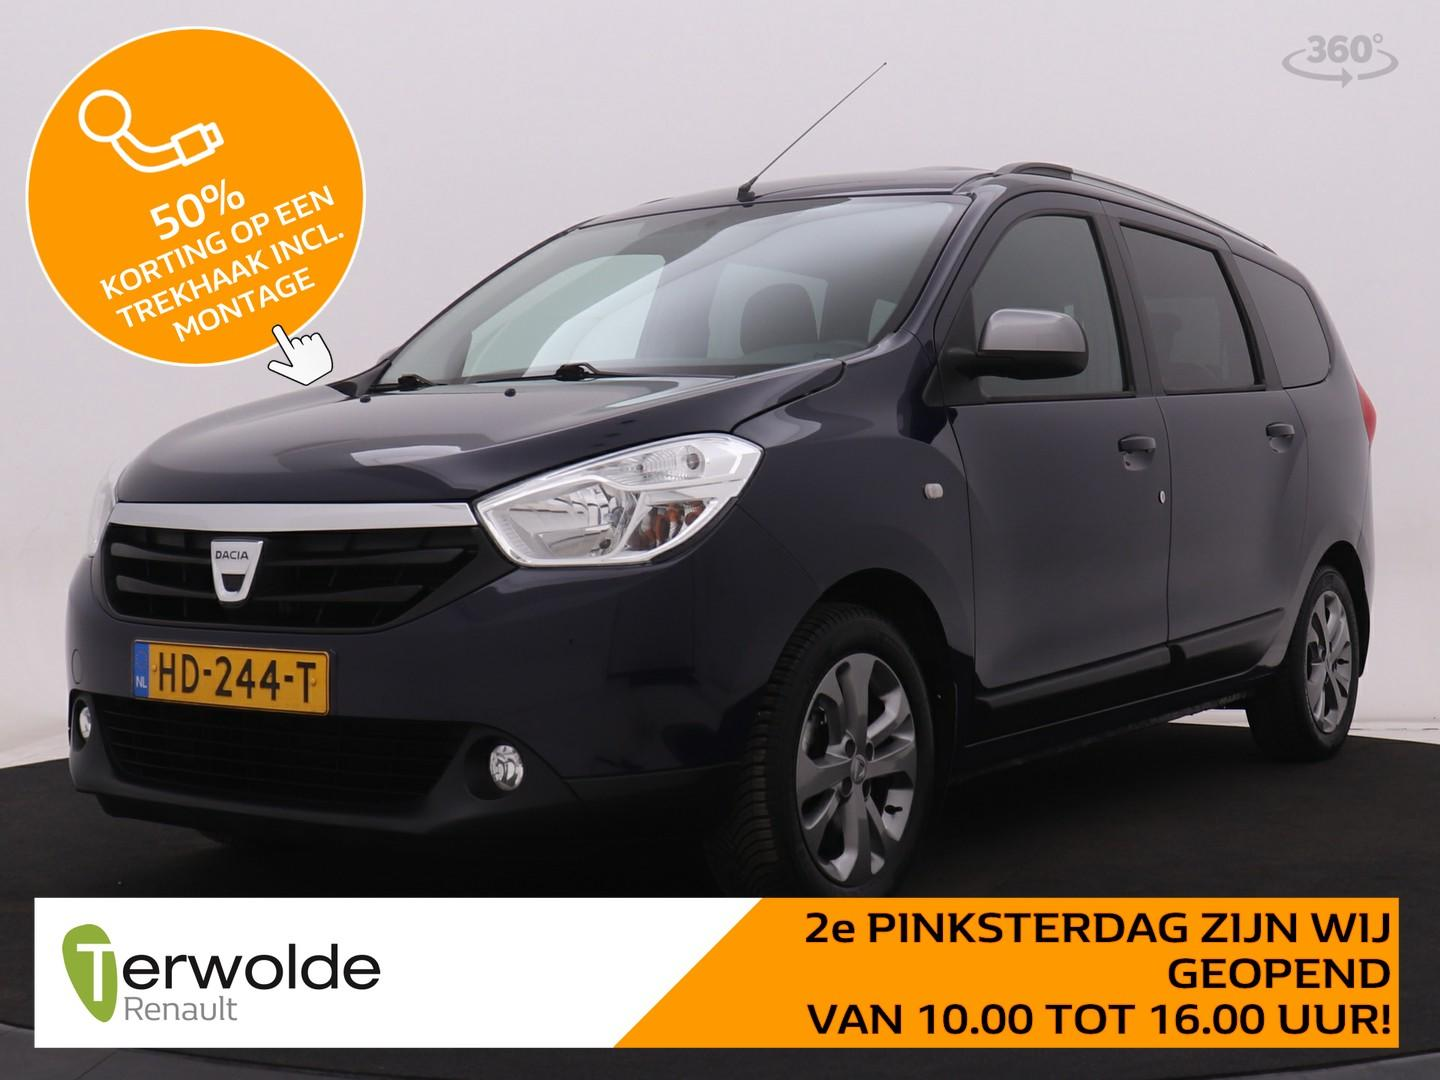 Dacia Lodgy 1.5 dci 10th anniversary 5p.